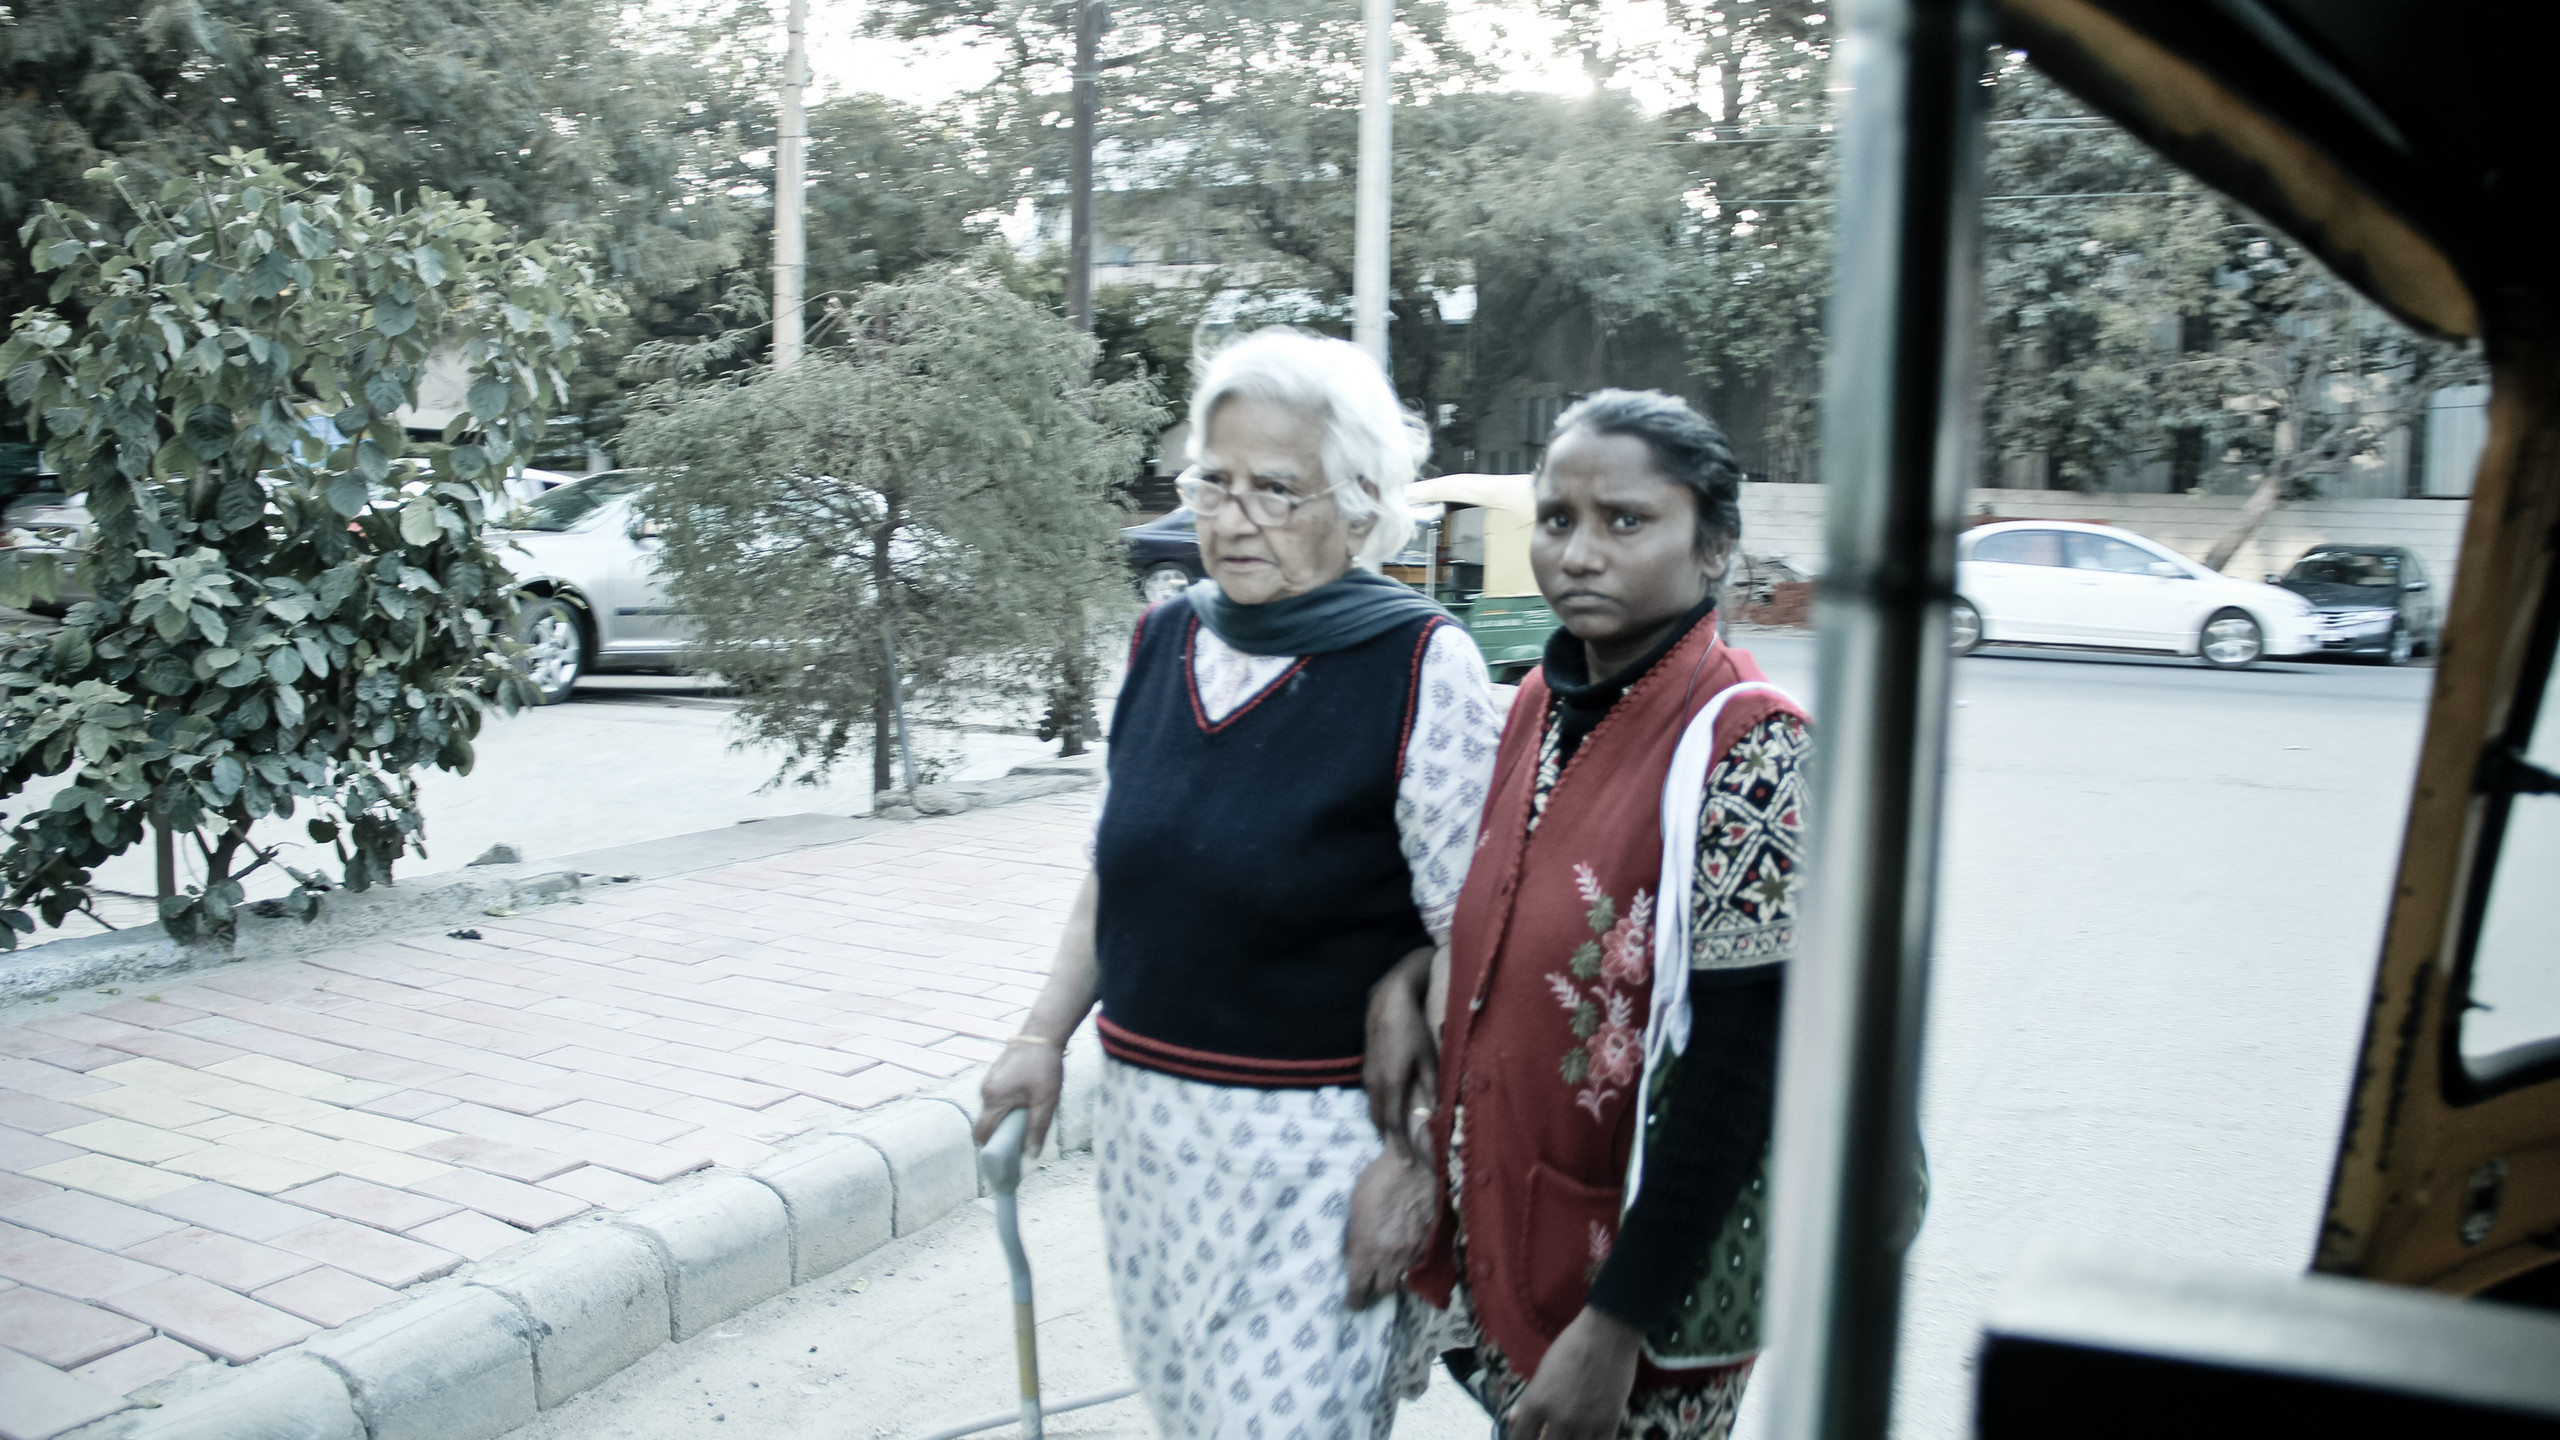 Sunita accompanies the oldest citizen of her family she works and lives with, for her evening walk